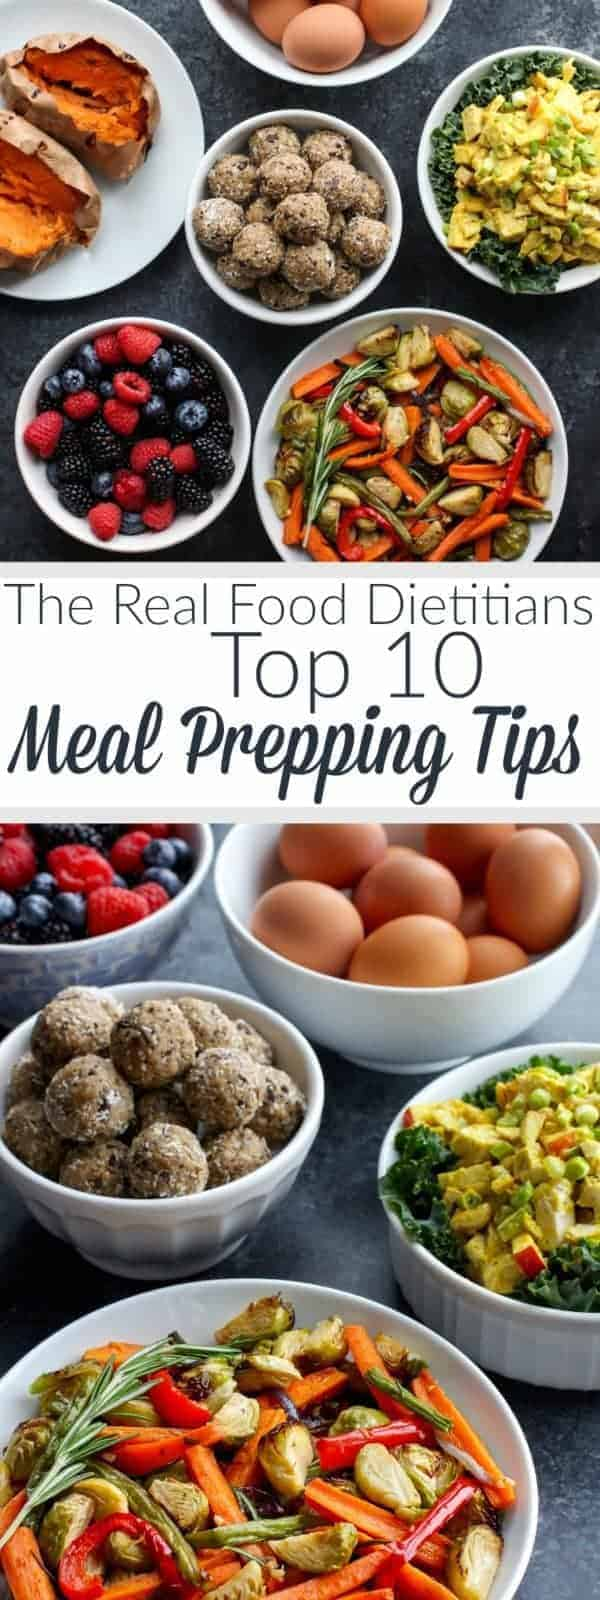 The Real Food Dietitians Top 10 Meal Prepping Tips + Introducing our NEW Weekend Meal Prep Series including recipes, tips and done-for-you grocery lists. | therealfoodrds.com